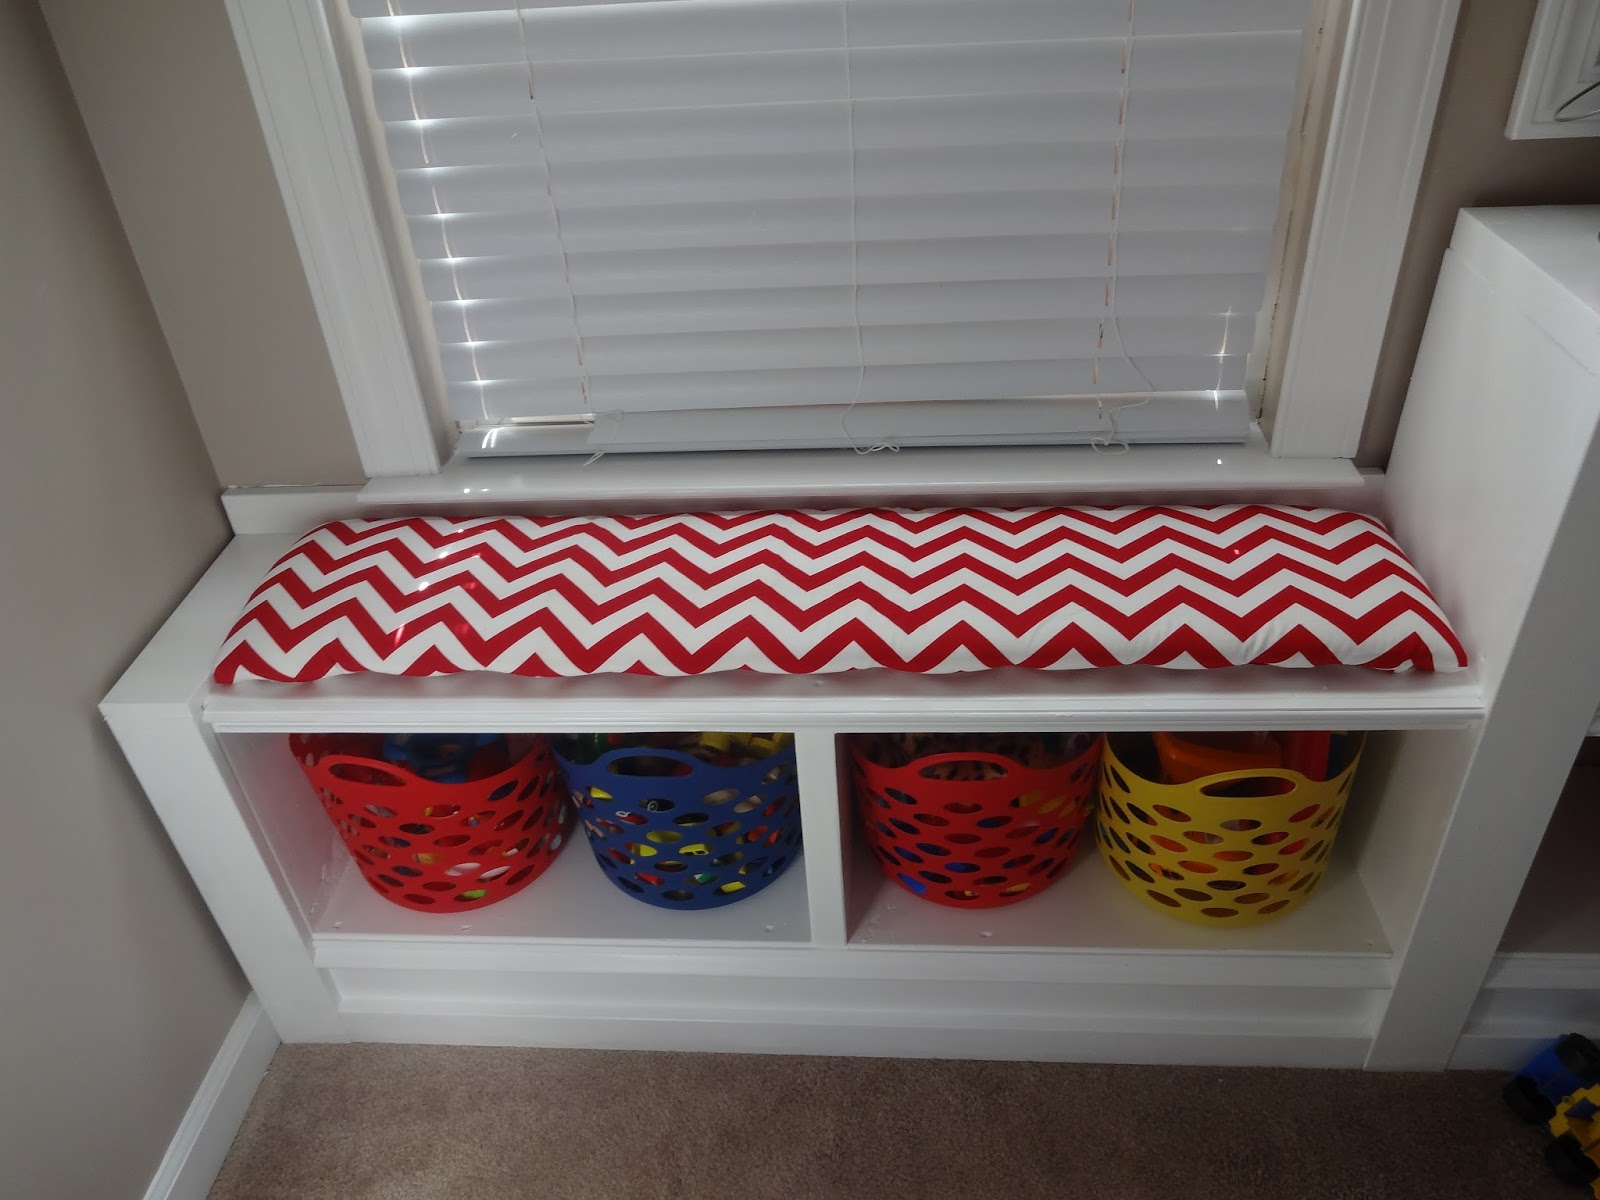 Diy Chair Cushion No Sew Stair Lifts For Elderly Raising Them Up Right Window Seat